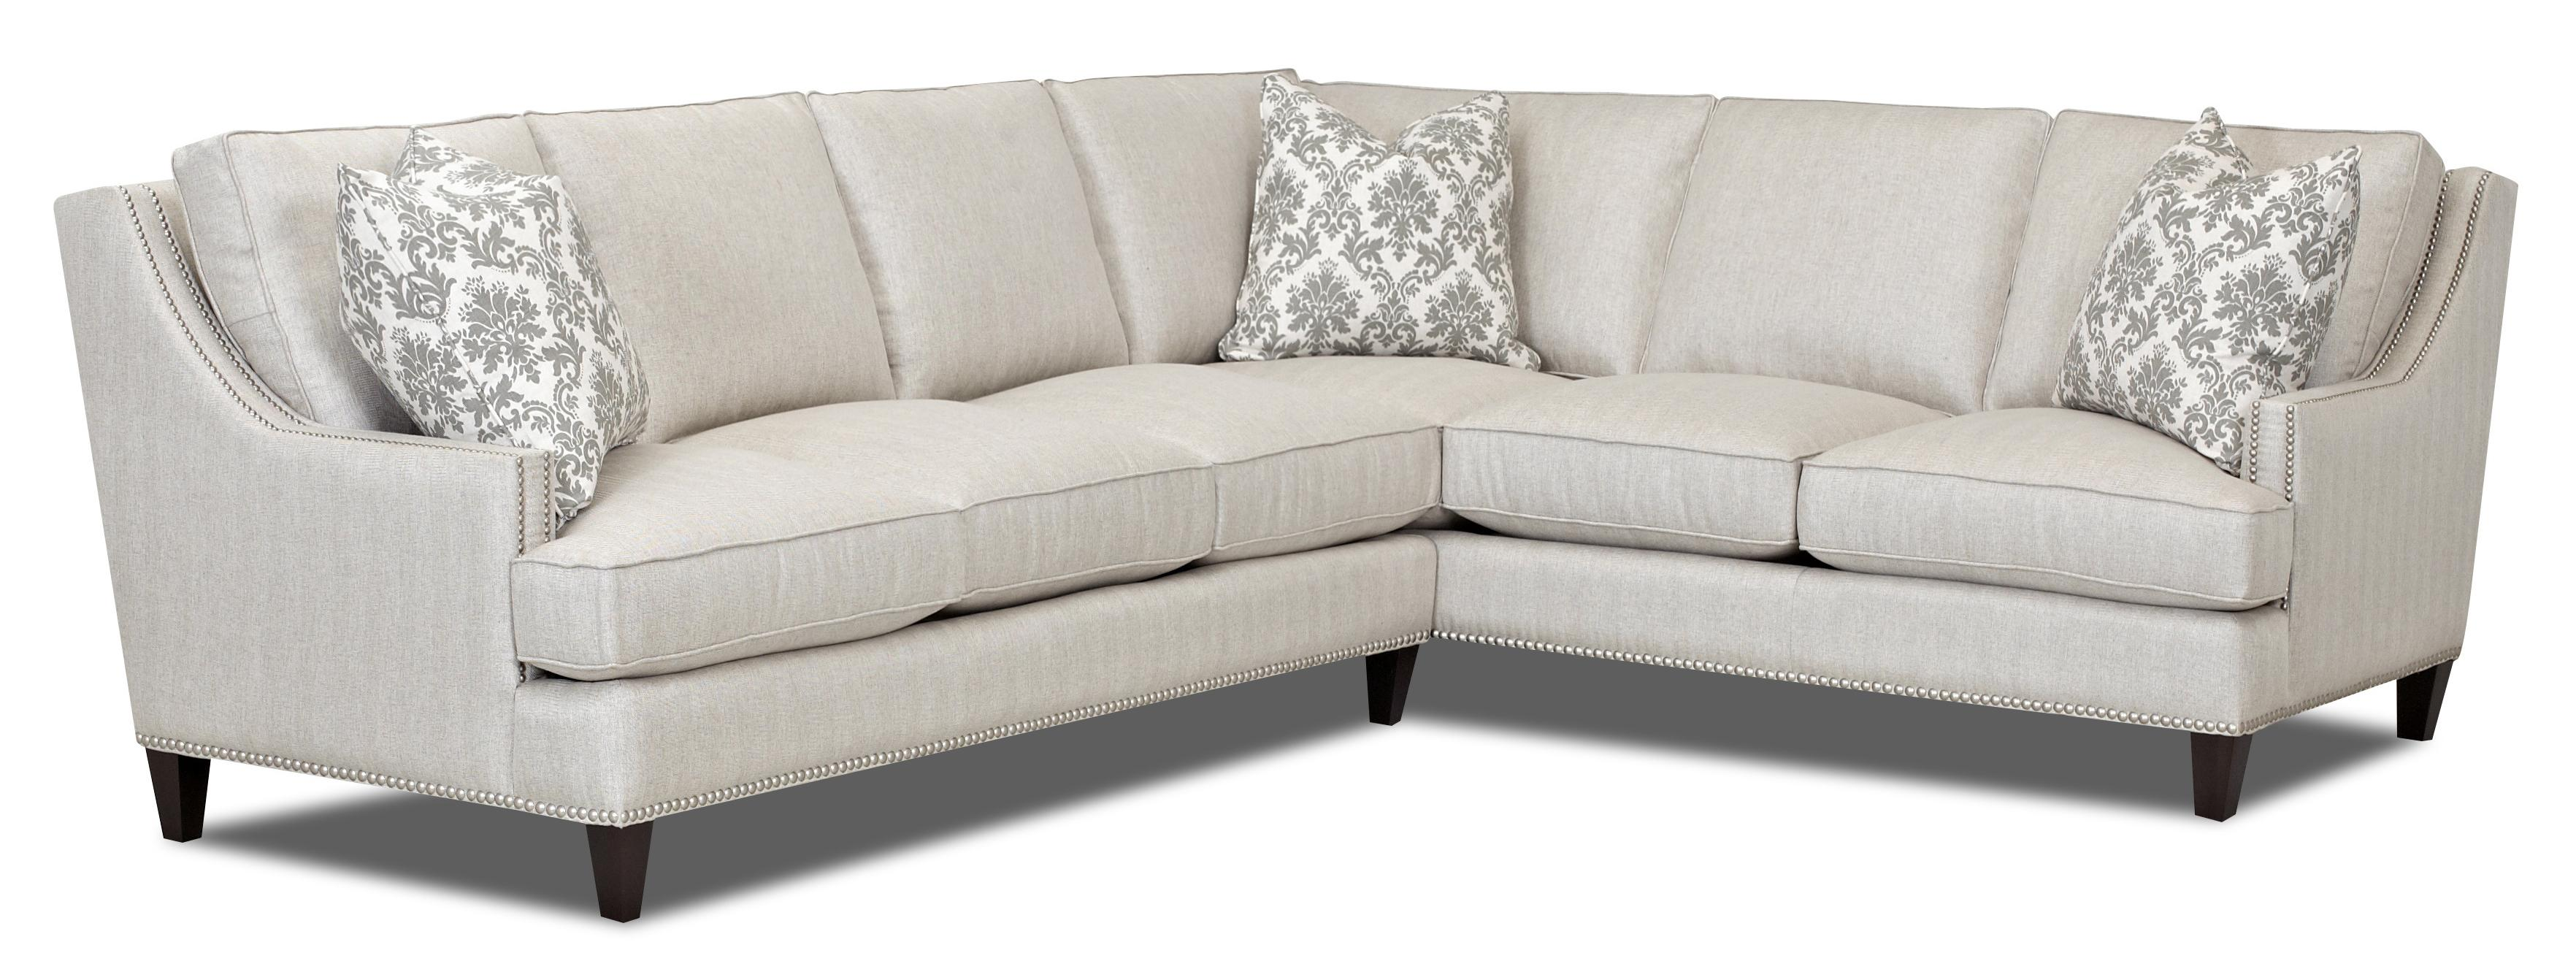 Transitional 2 Piece Sectional